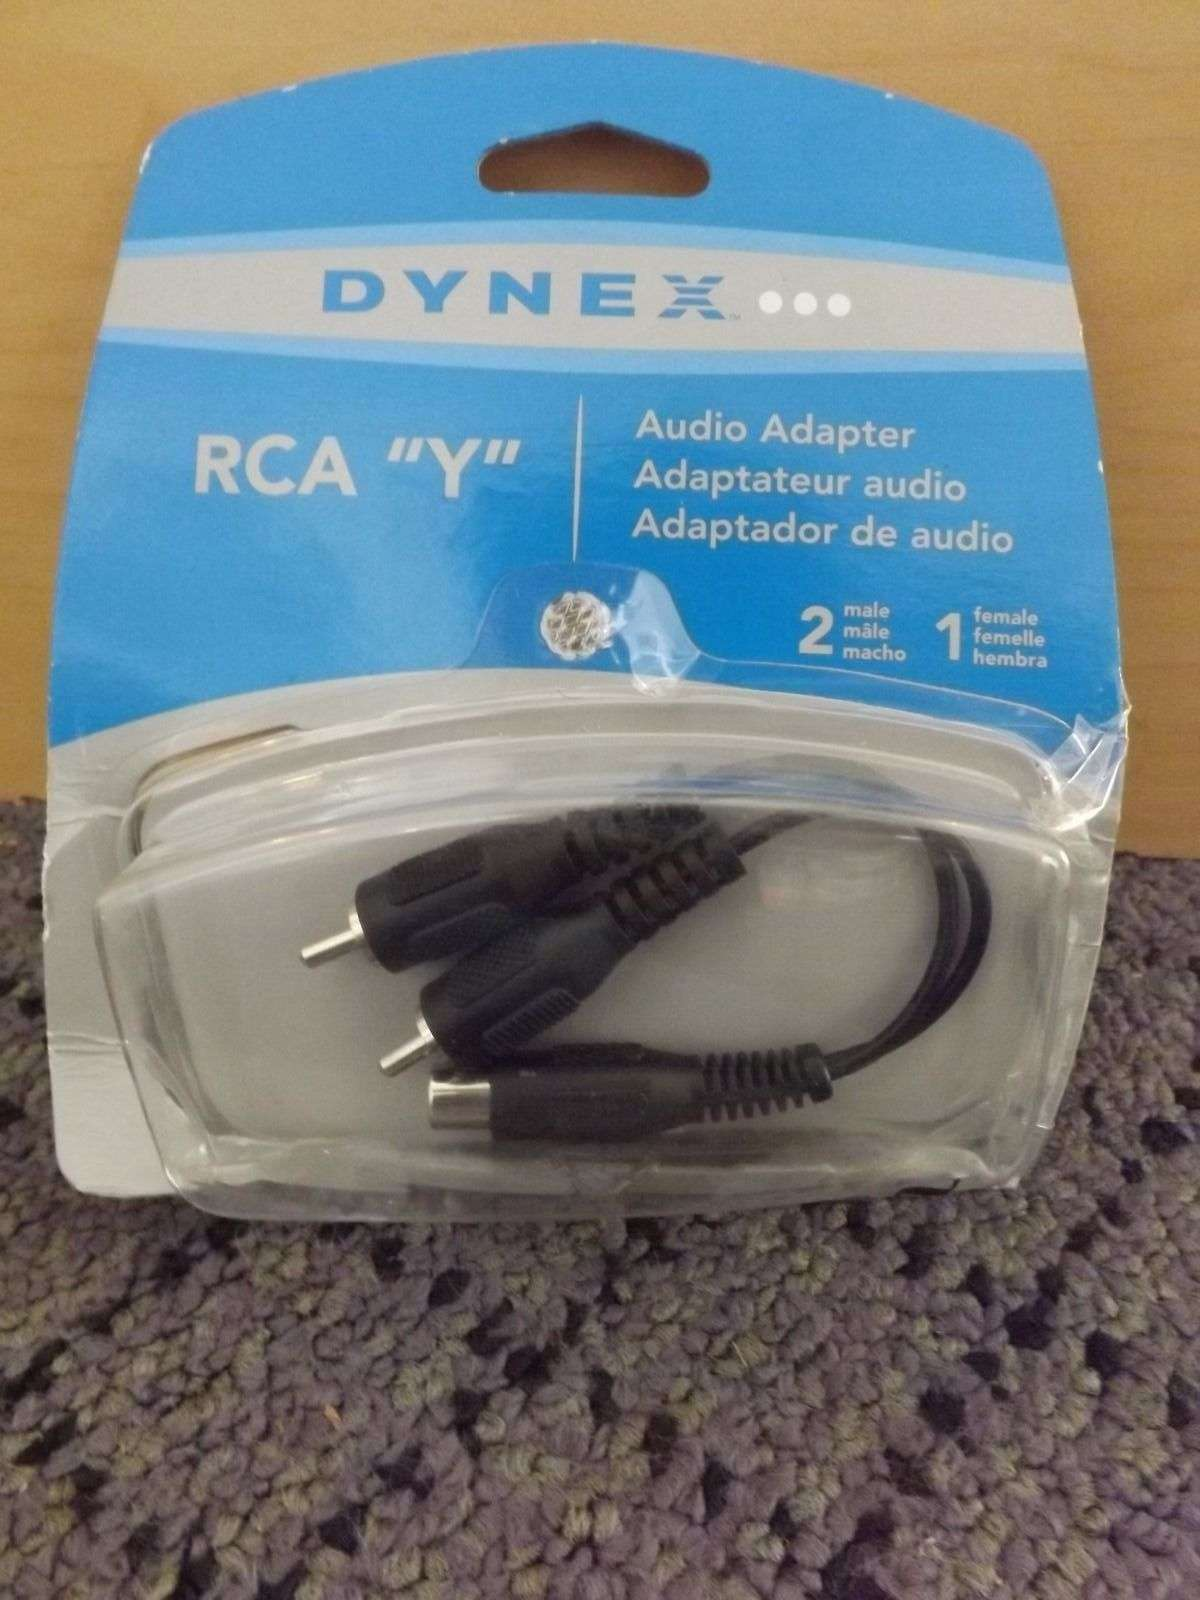 DynexTM - RCA Y Audio Adapter dx-ad115 Auction, For Sale - Item #917964